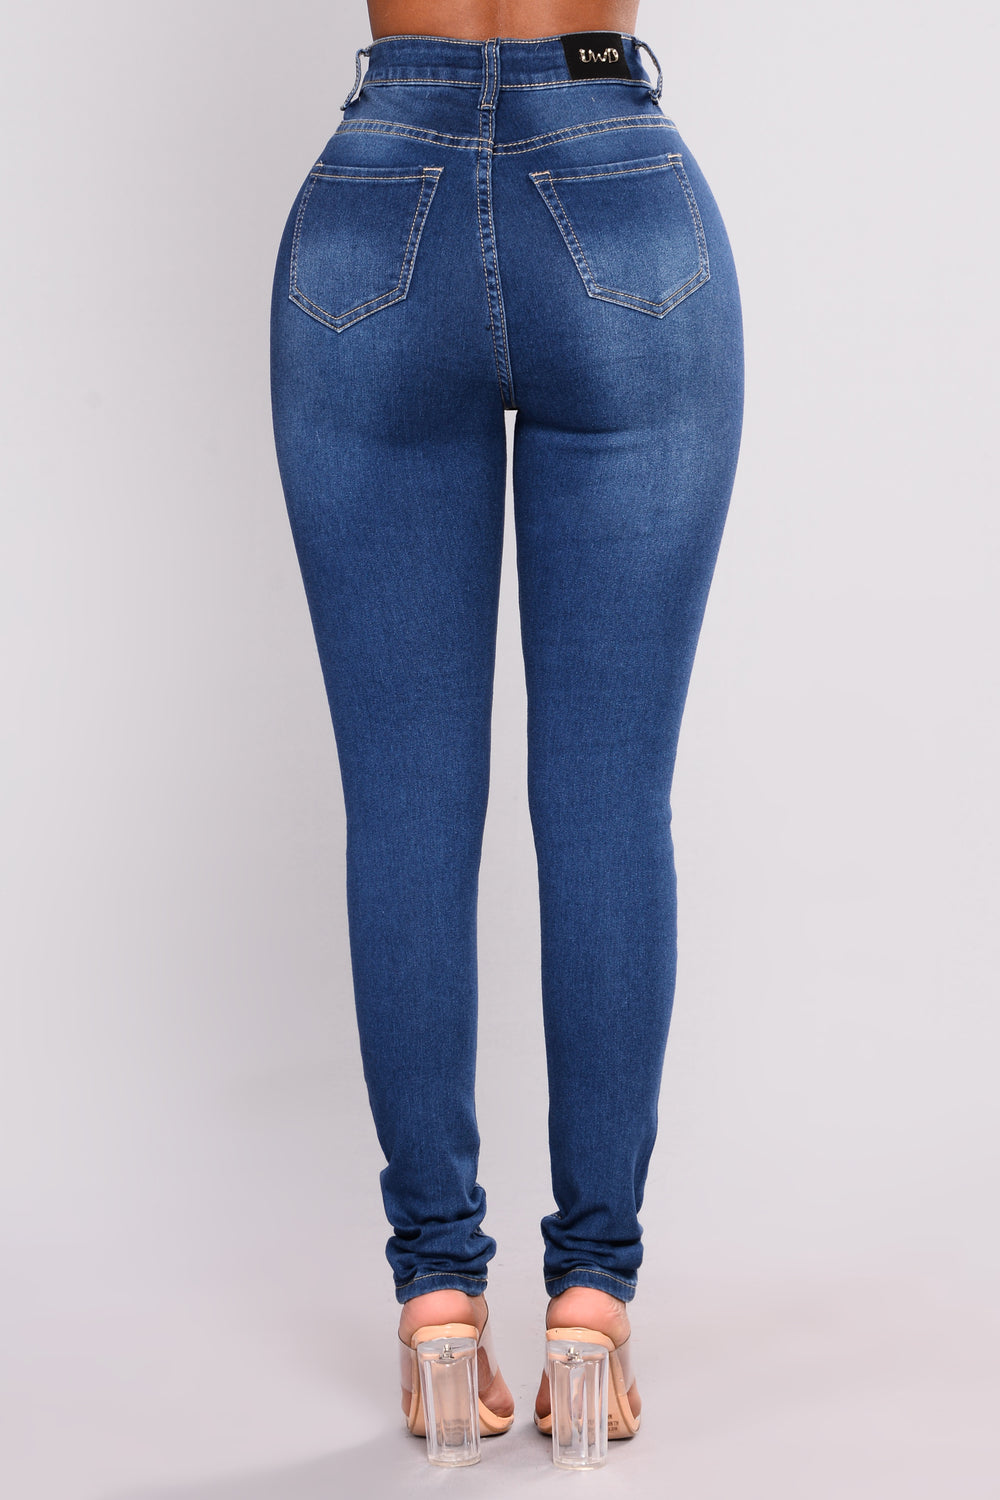 Guess Who Skinny Jeans - Medium Blue Wash